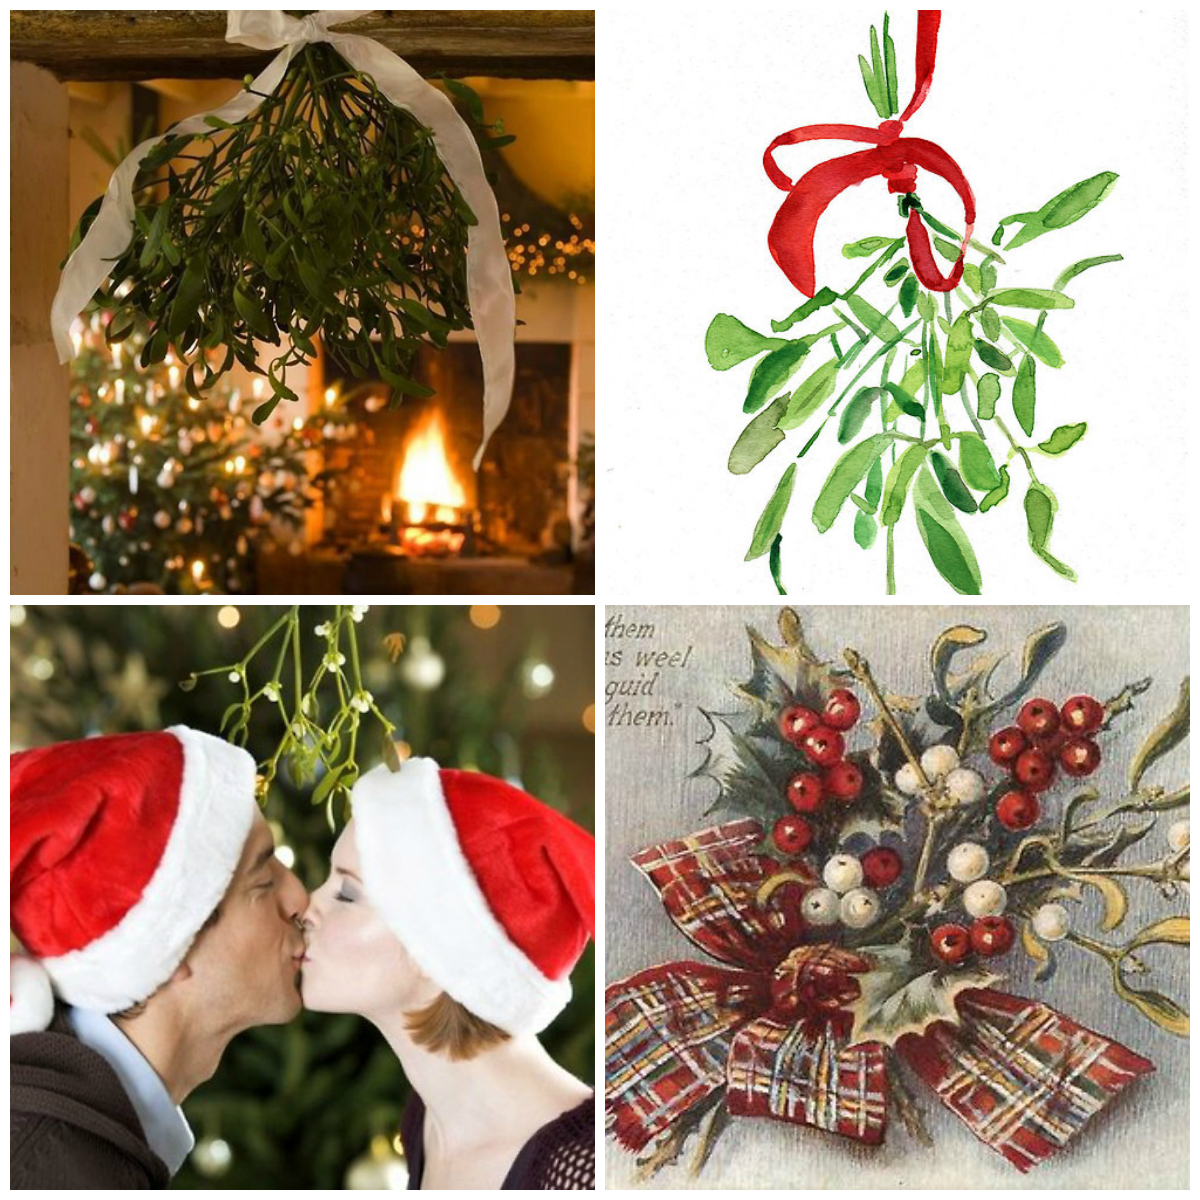 Mistletoe The Symbolism Of Plant And Christmas Traditions